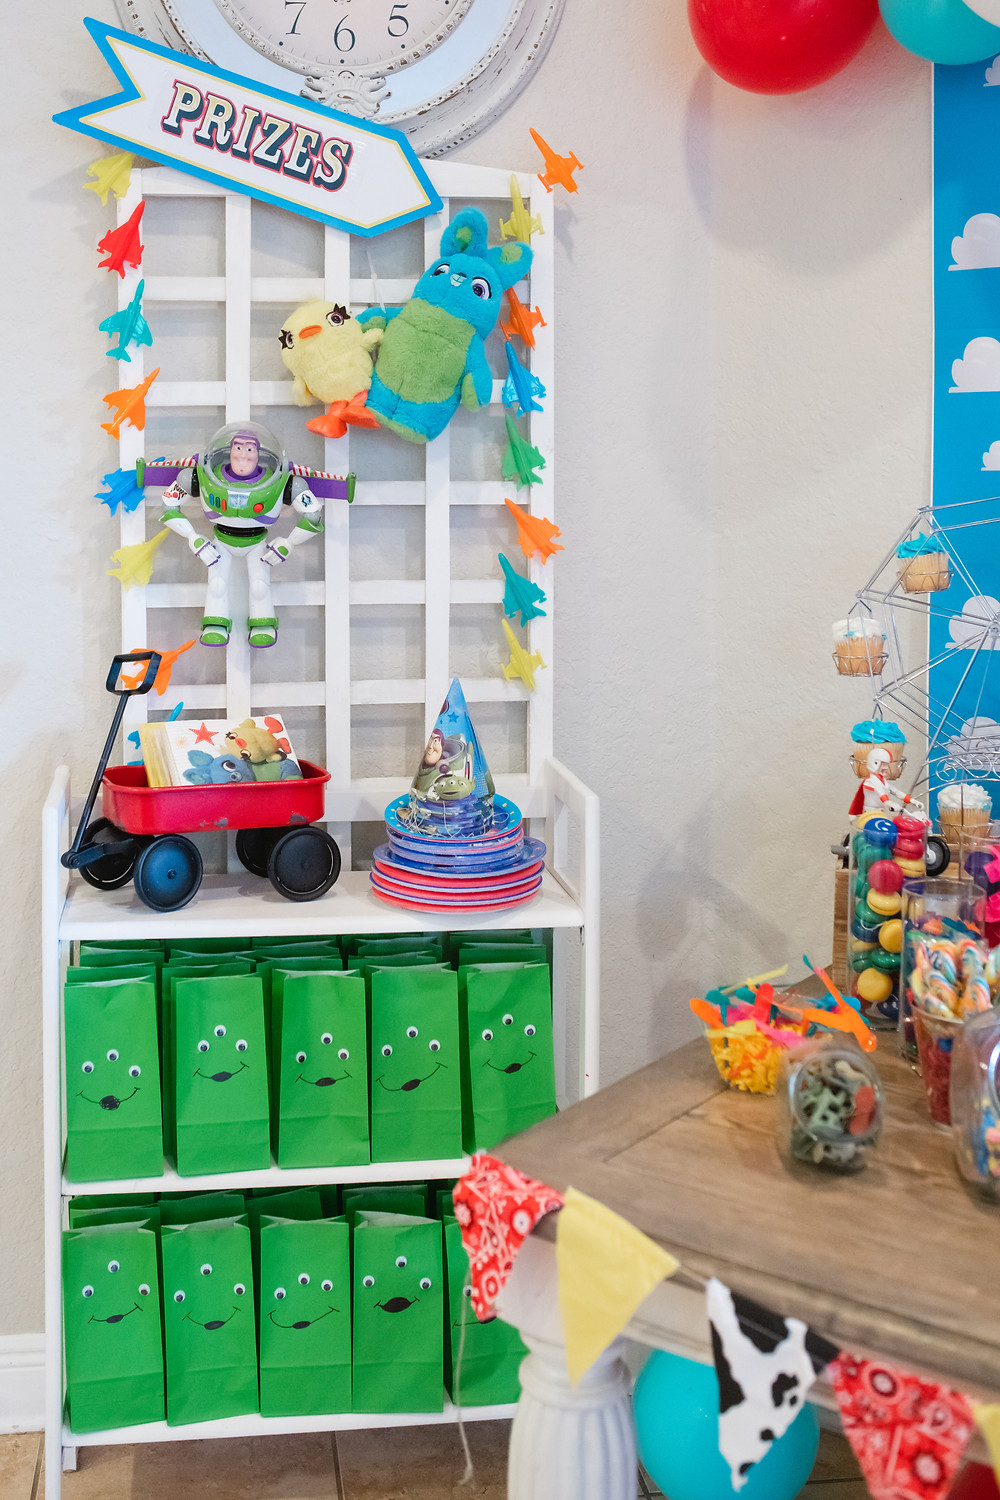 Toy Story 4 Carnival Party Birthday Prizes